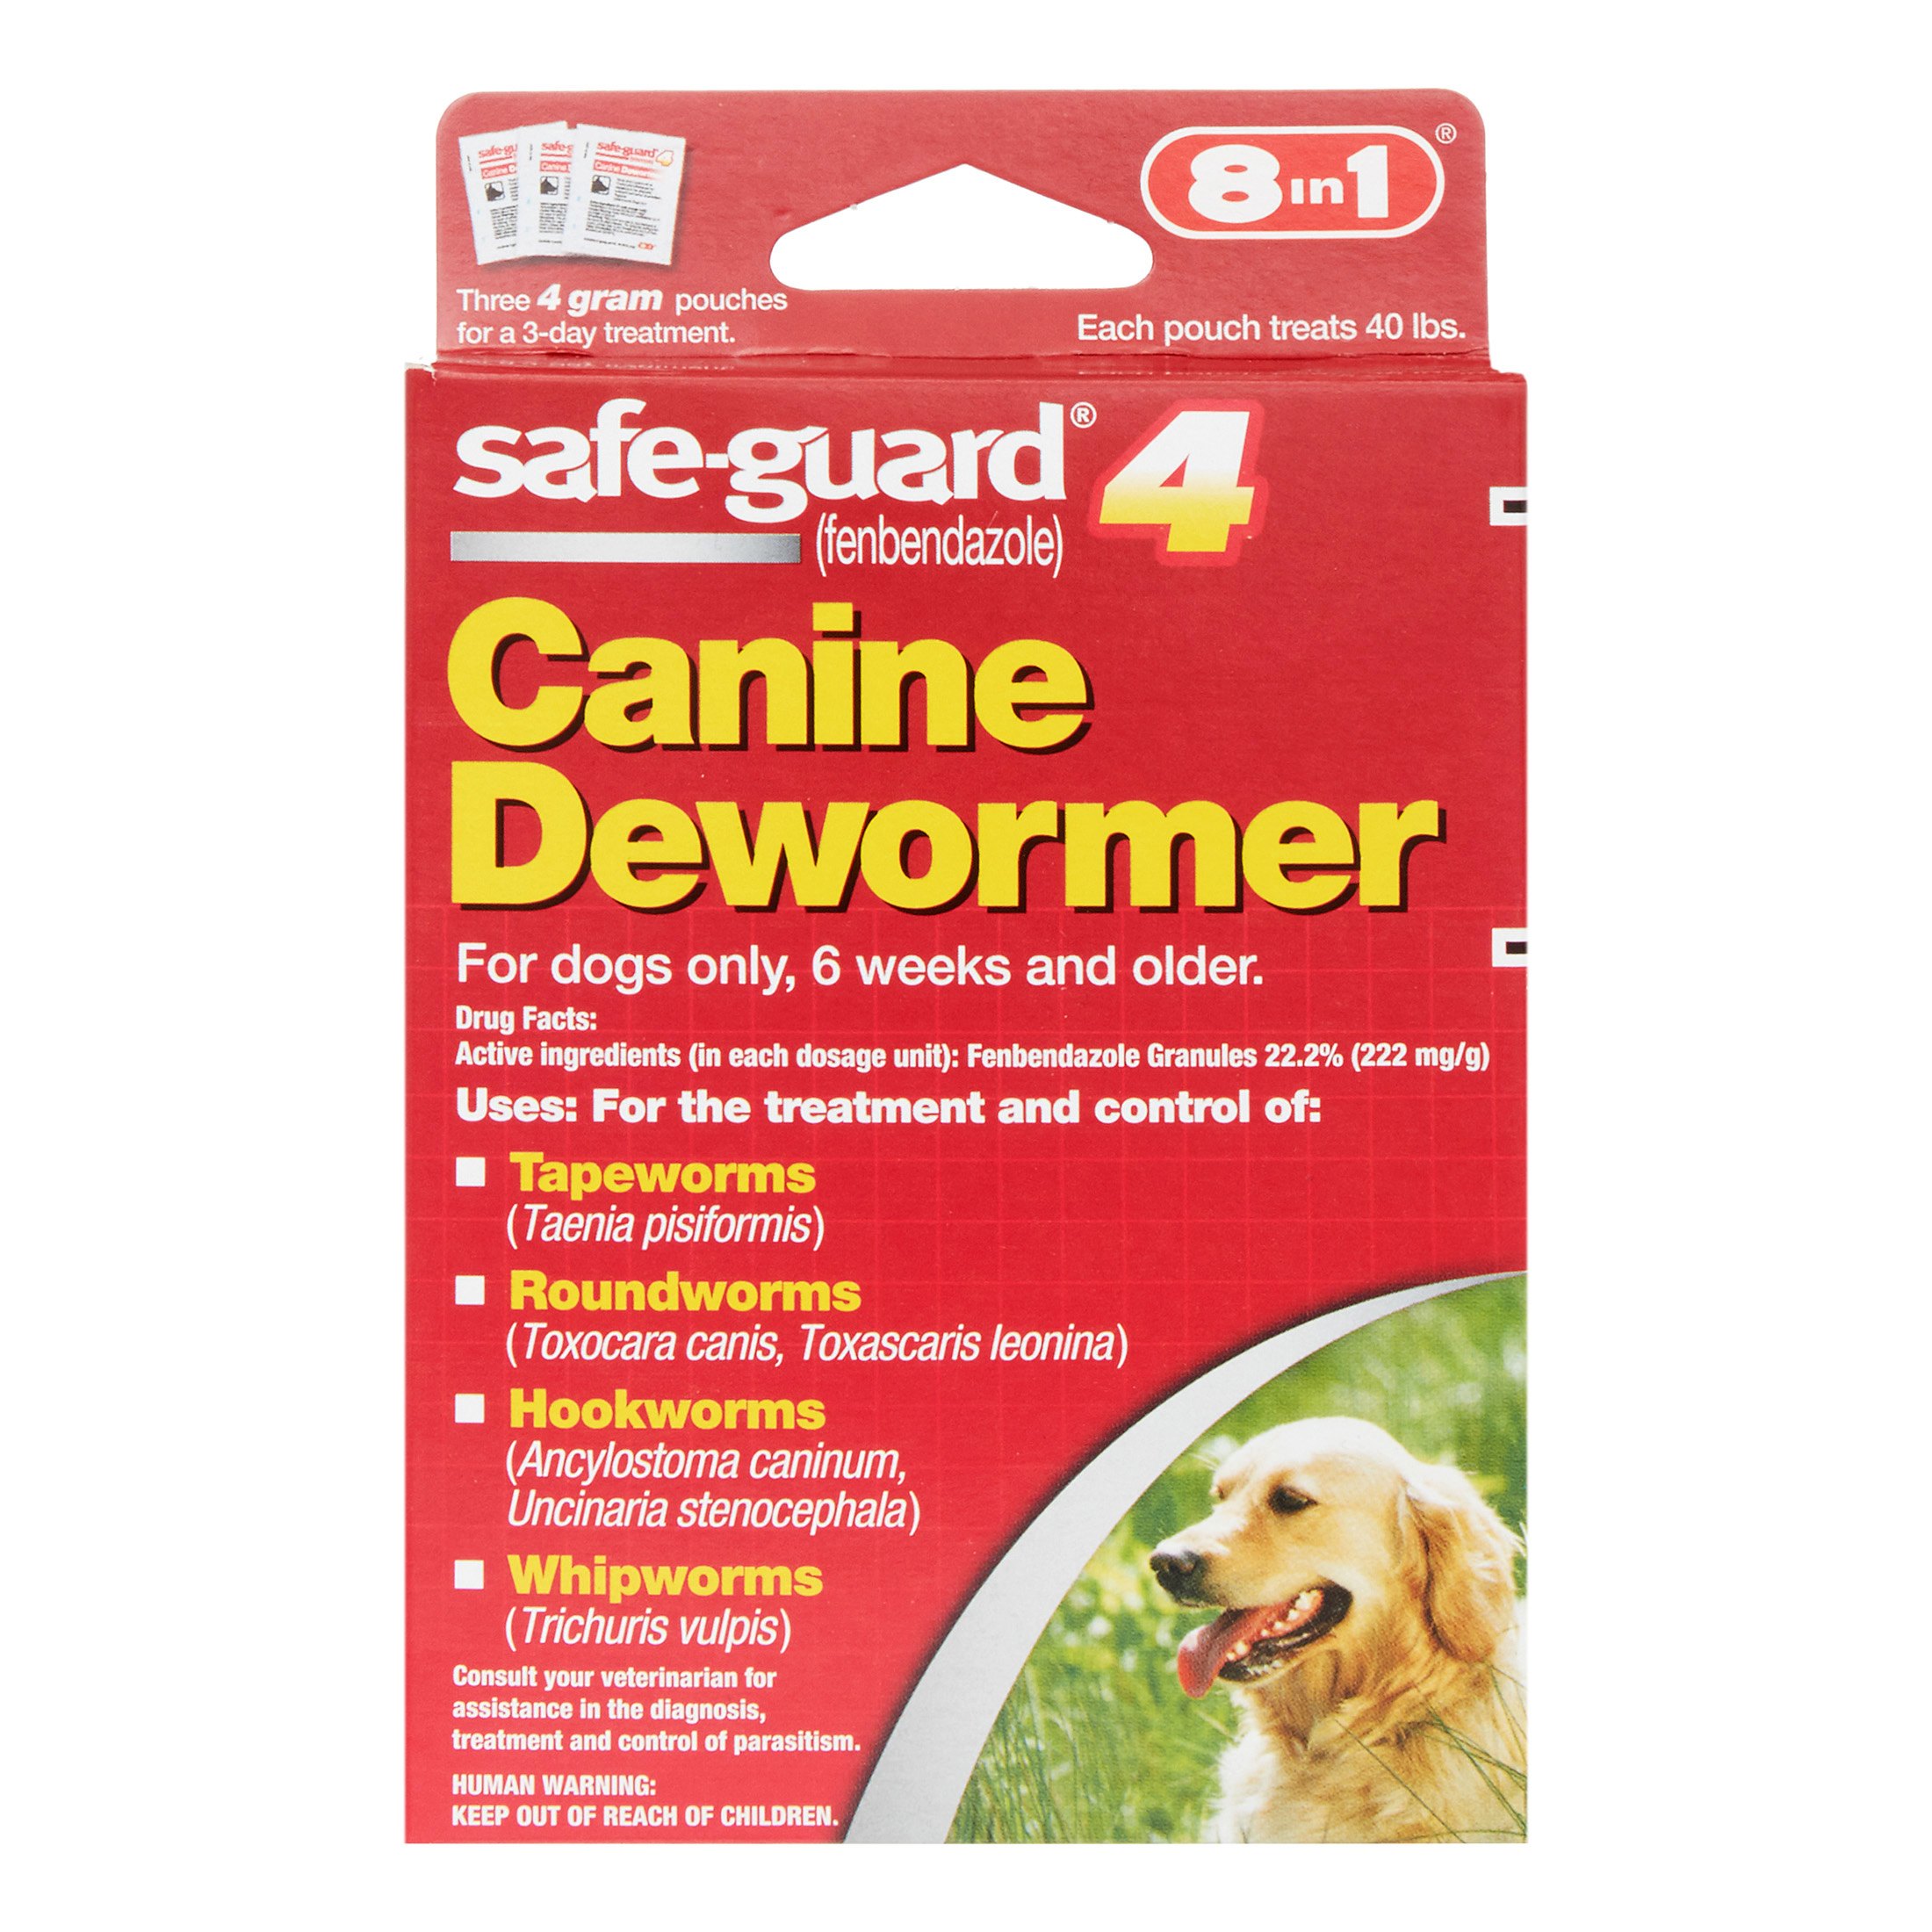 8in1 Safe-Guard Canine De-Wormer Large Dog Treatment, 3 Ct